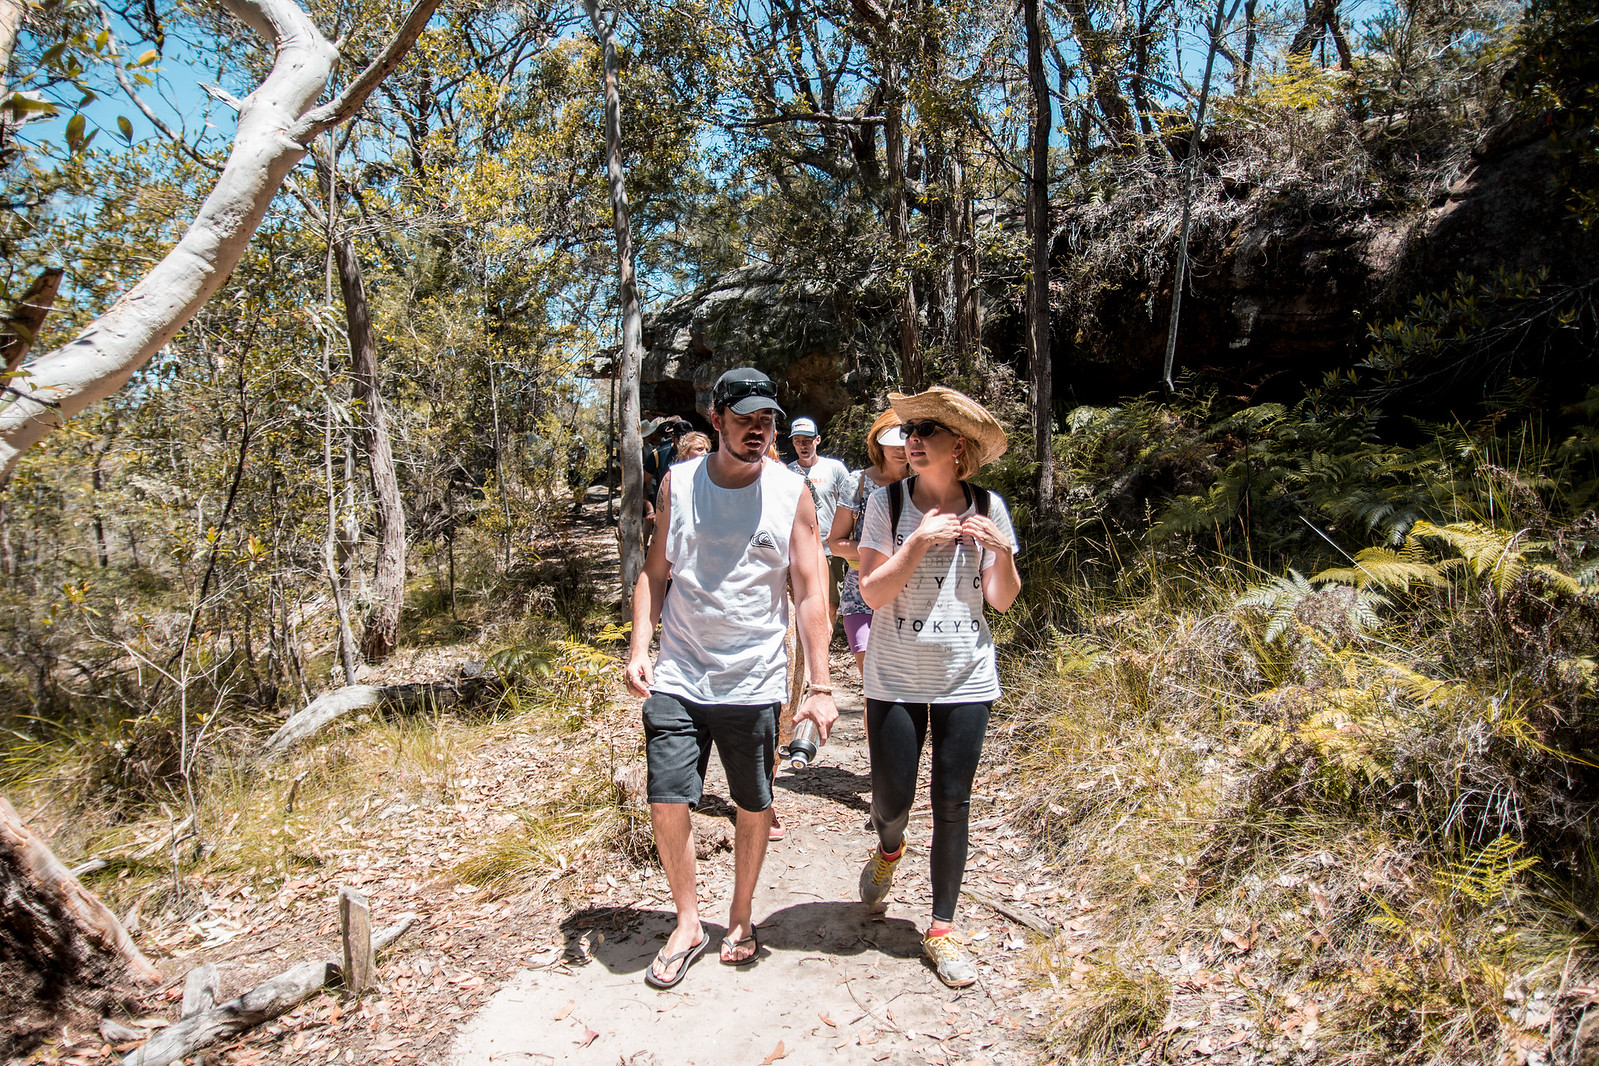 Walking from site to site through the bush with Stuart and learning more along the way!